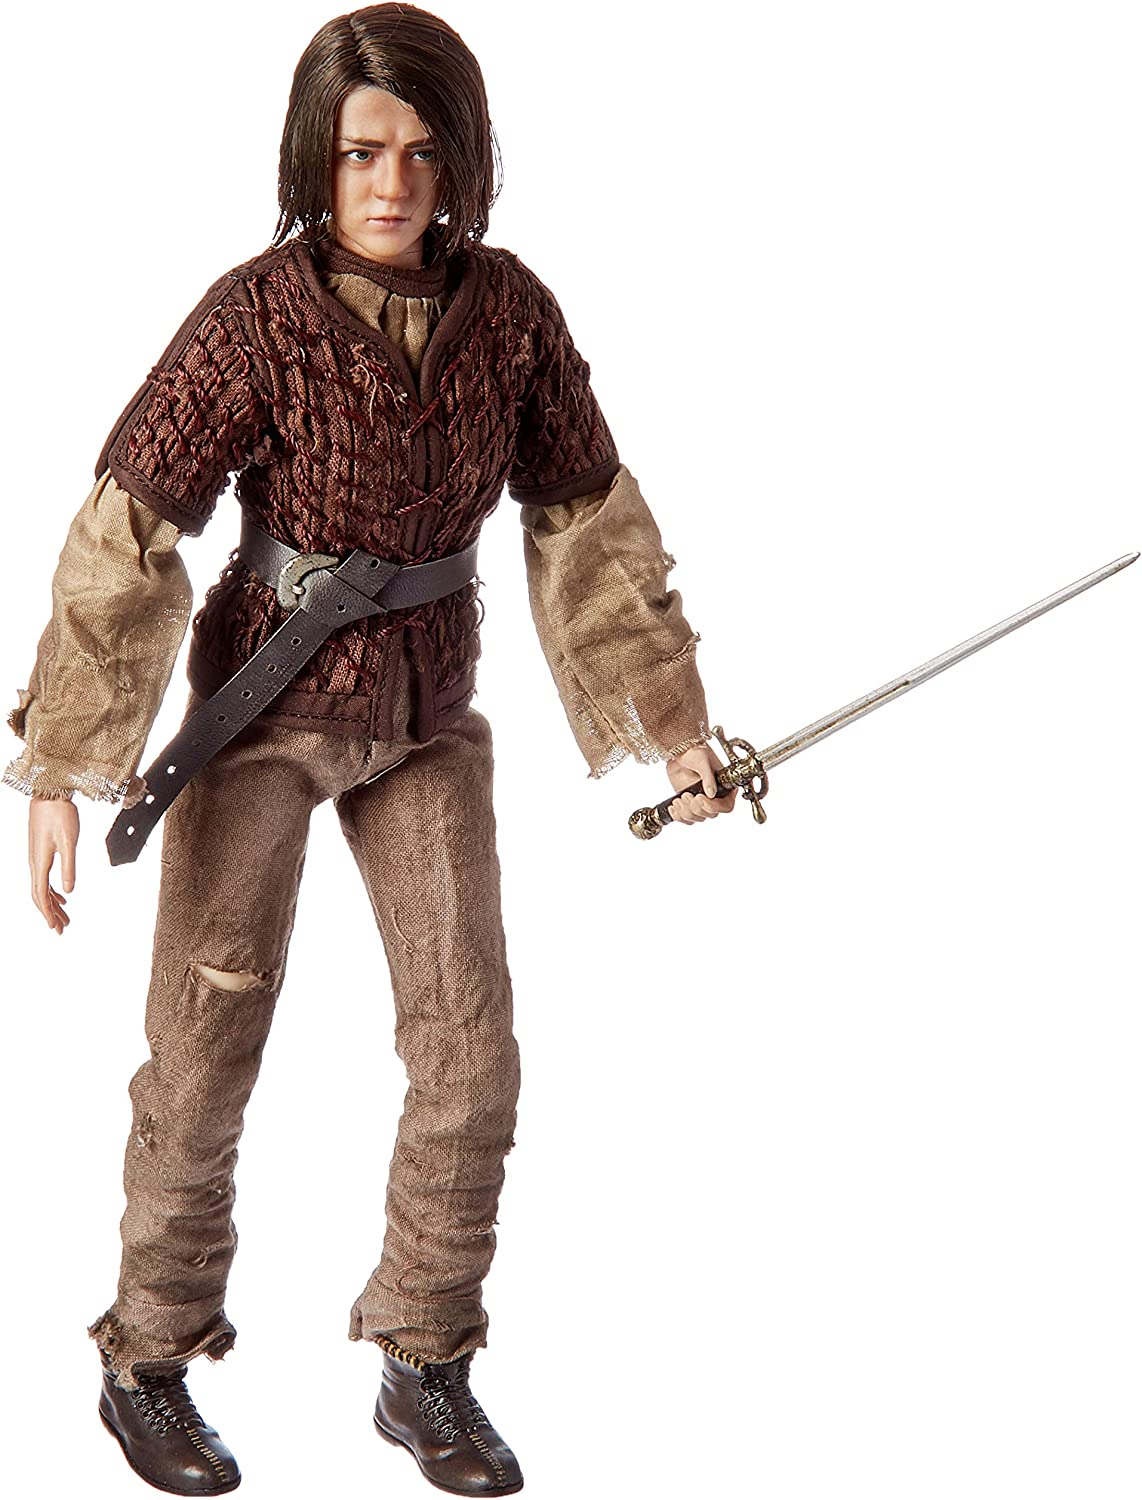 Game of Thrones DEC178130 Action Figure, Various